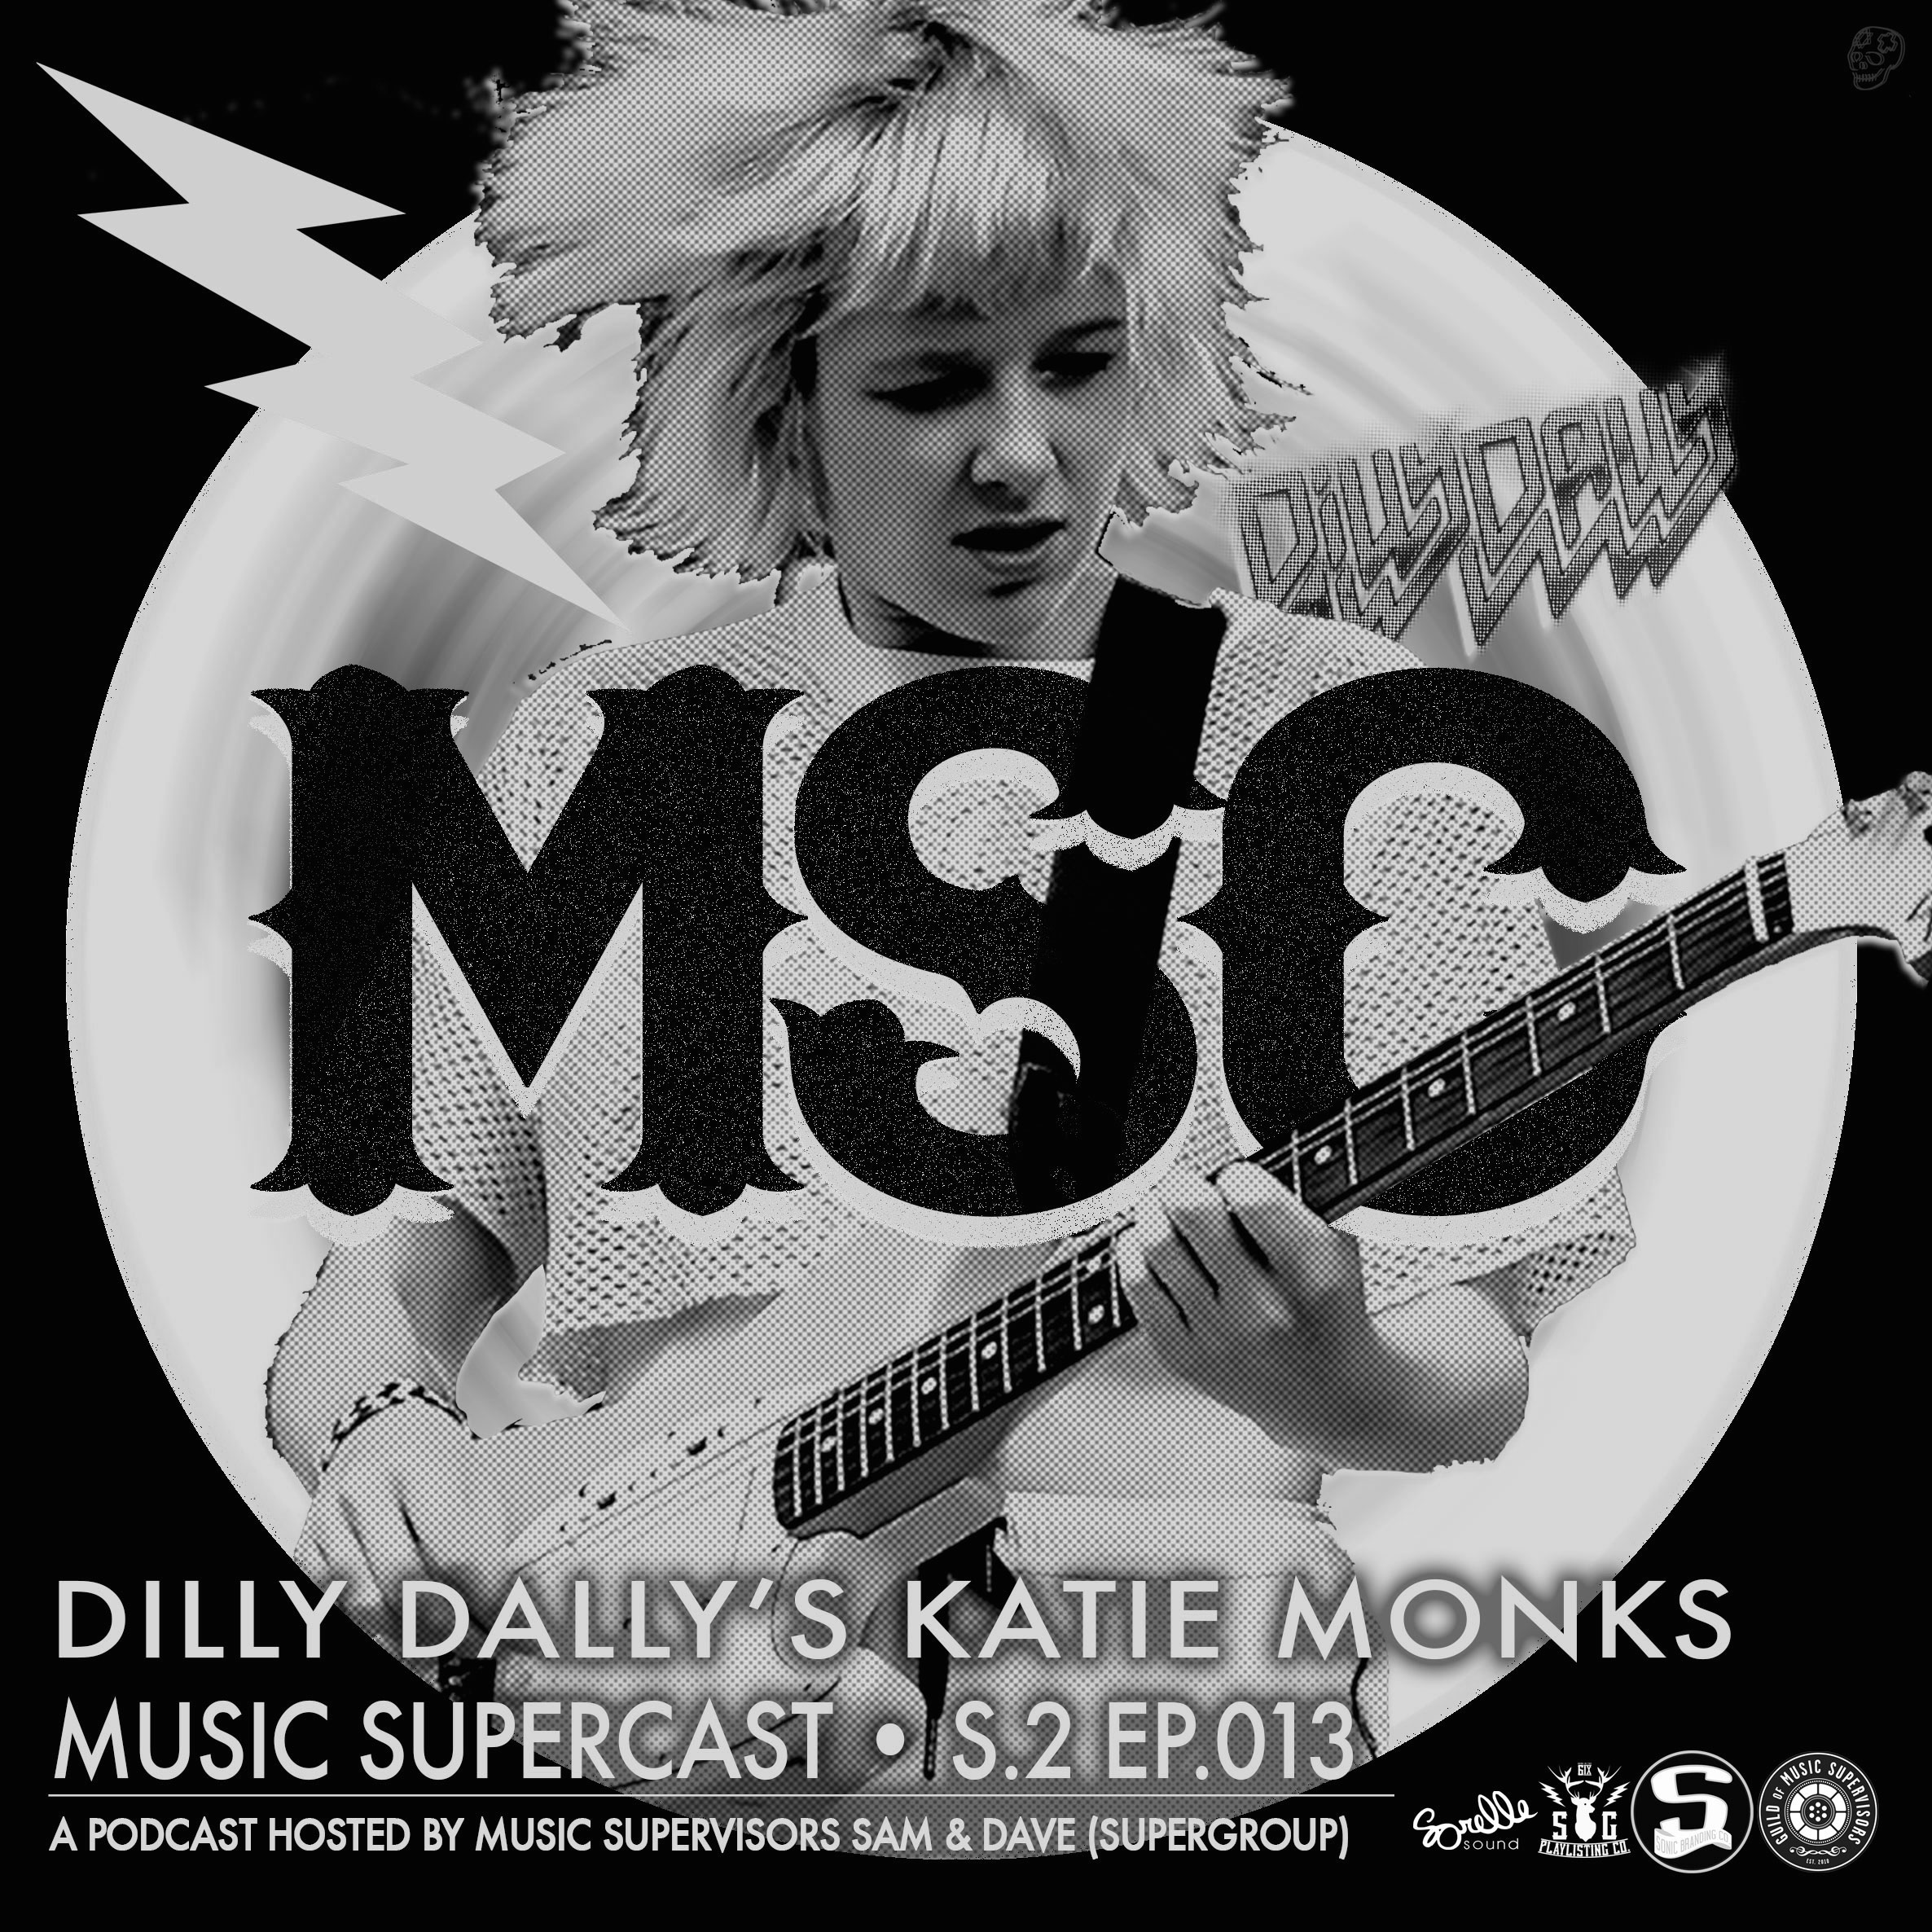 SUPERCAST-S2-COVER-DillyDally copy.jpg